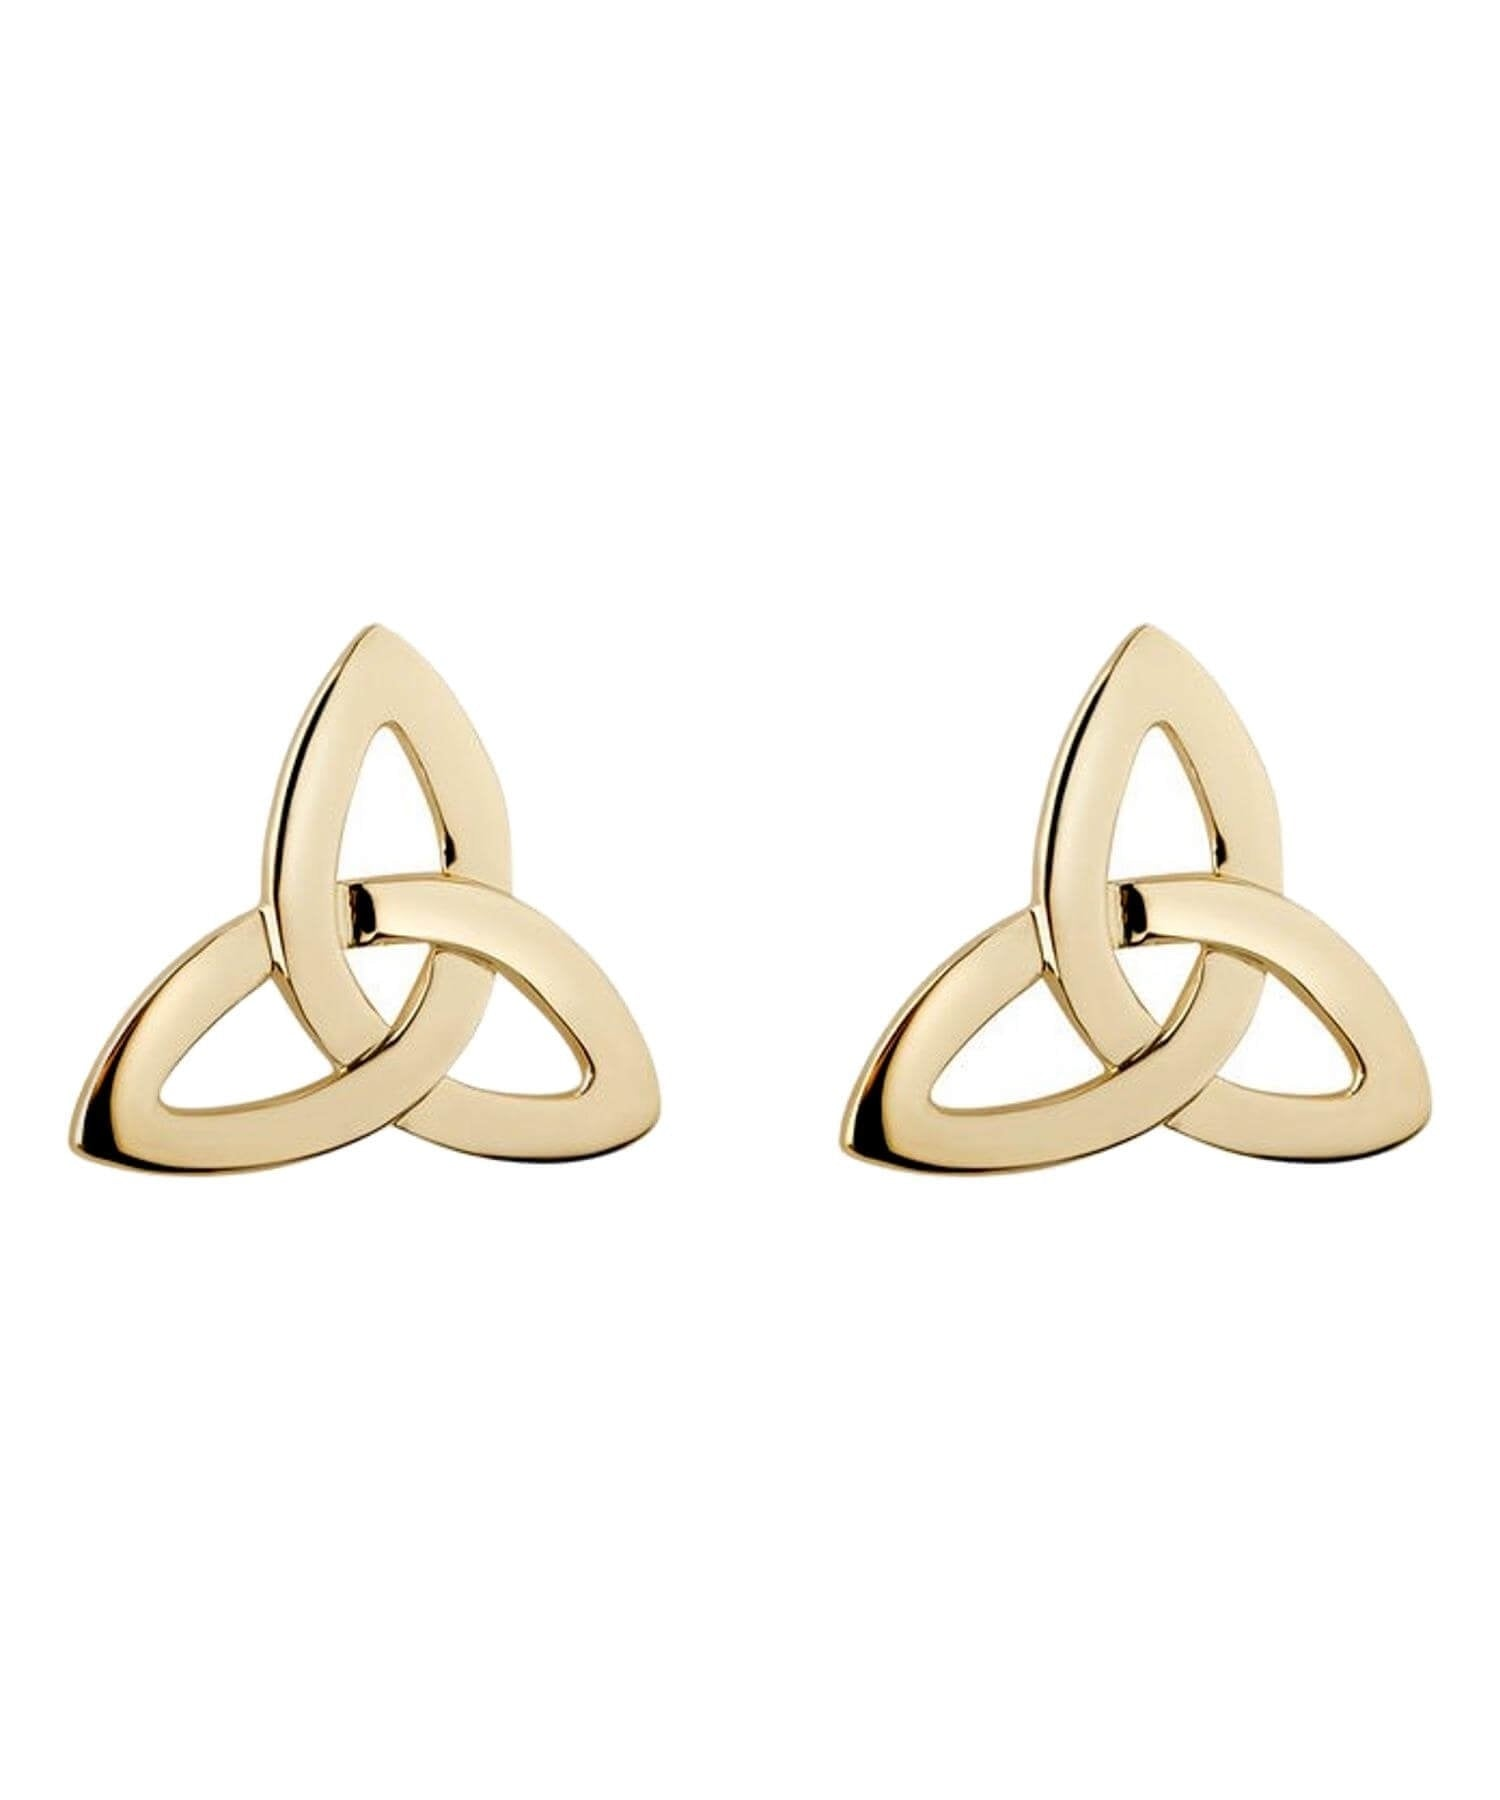 Gold Trinity Knot Earrings Solvar Celtic Jewellery